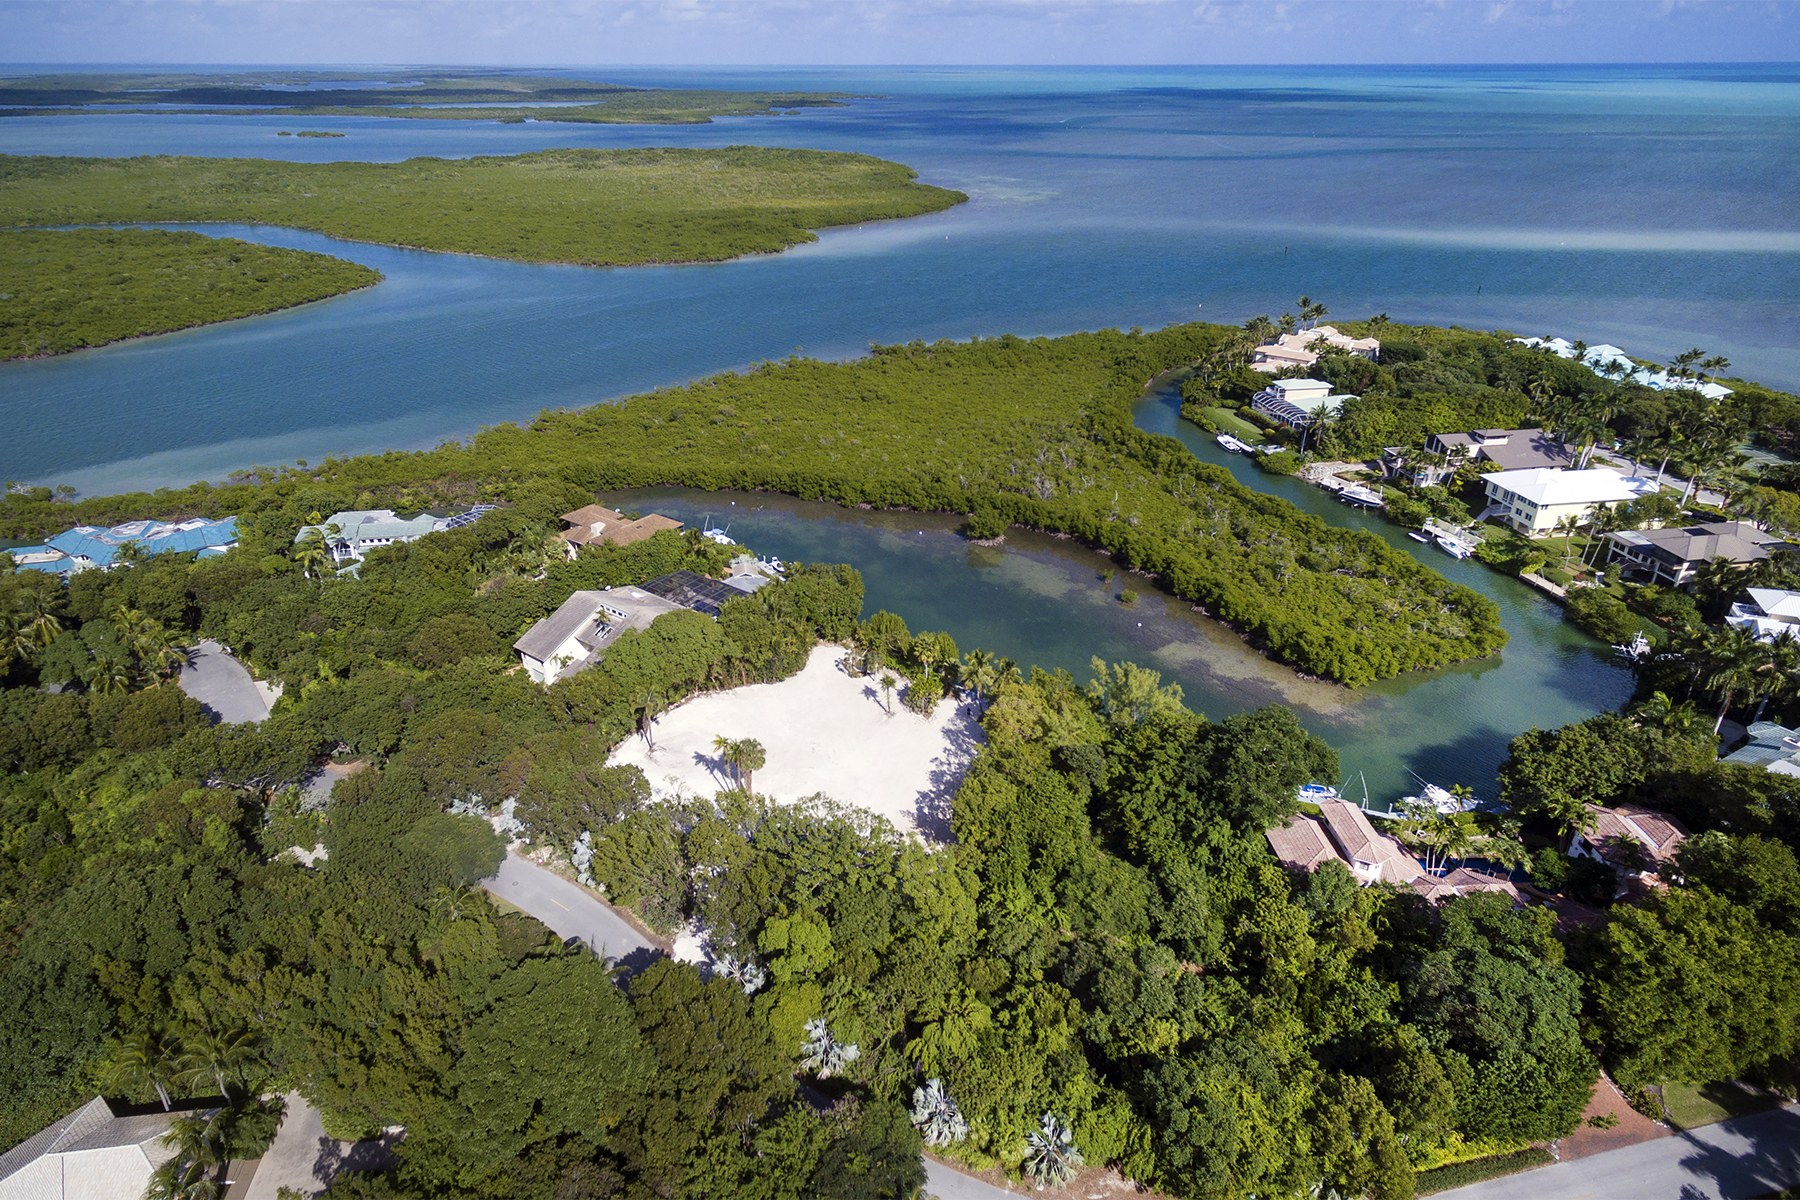 Land for Sale at 40 Cardinal Lane, Key Largo, FL Key Largo, Florida 33037 United States